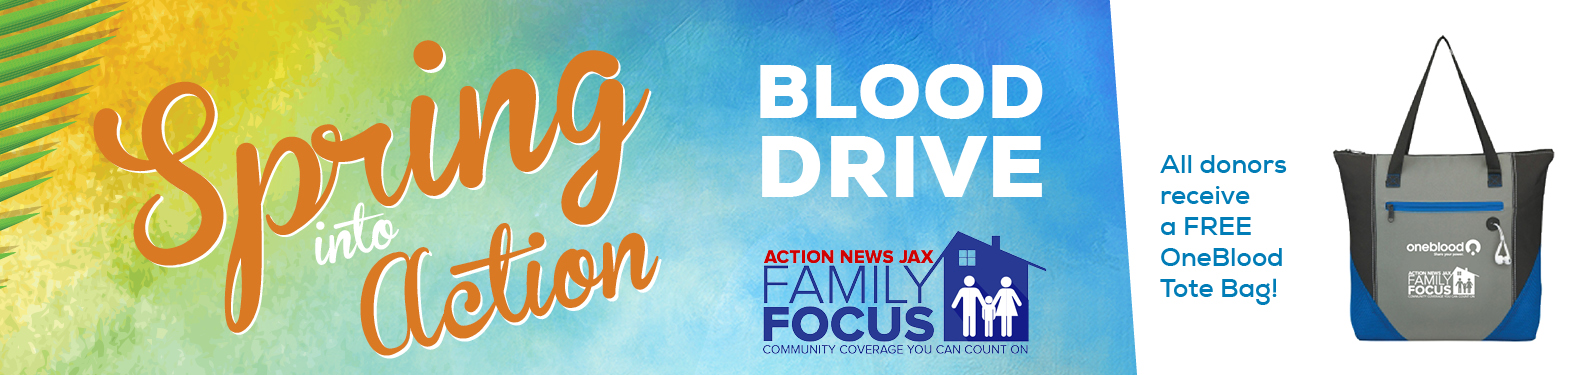 Spring Into Action Blood Drive